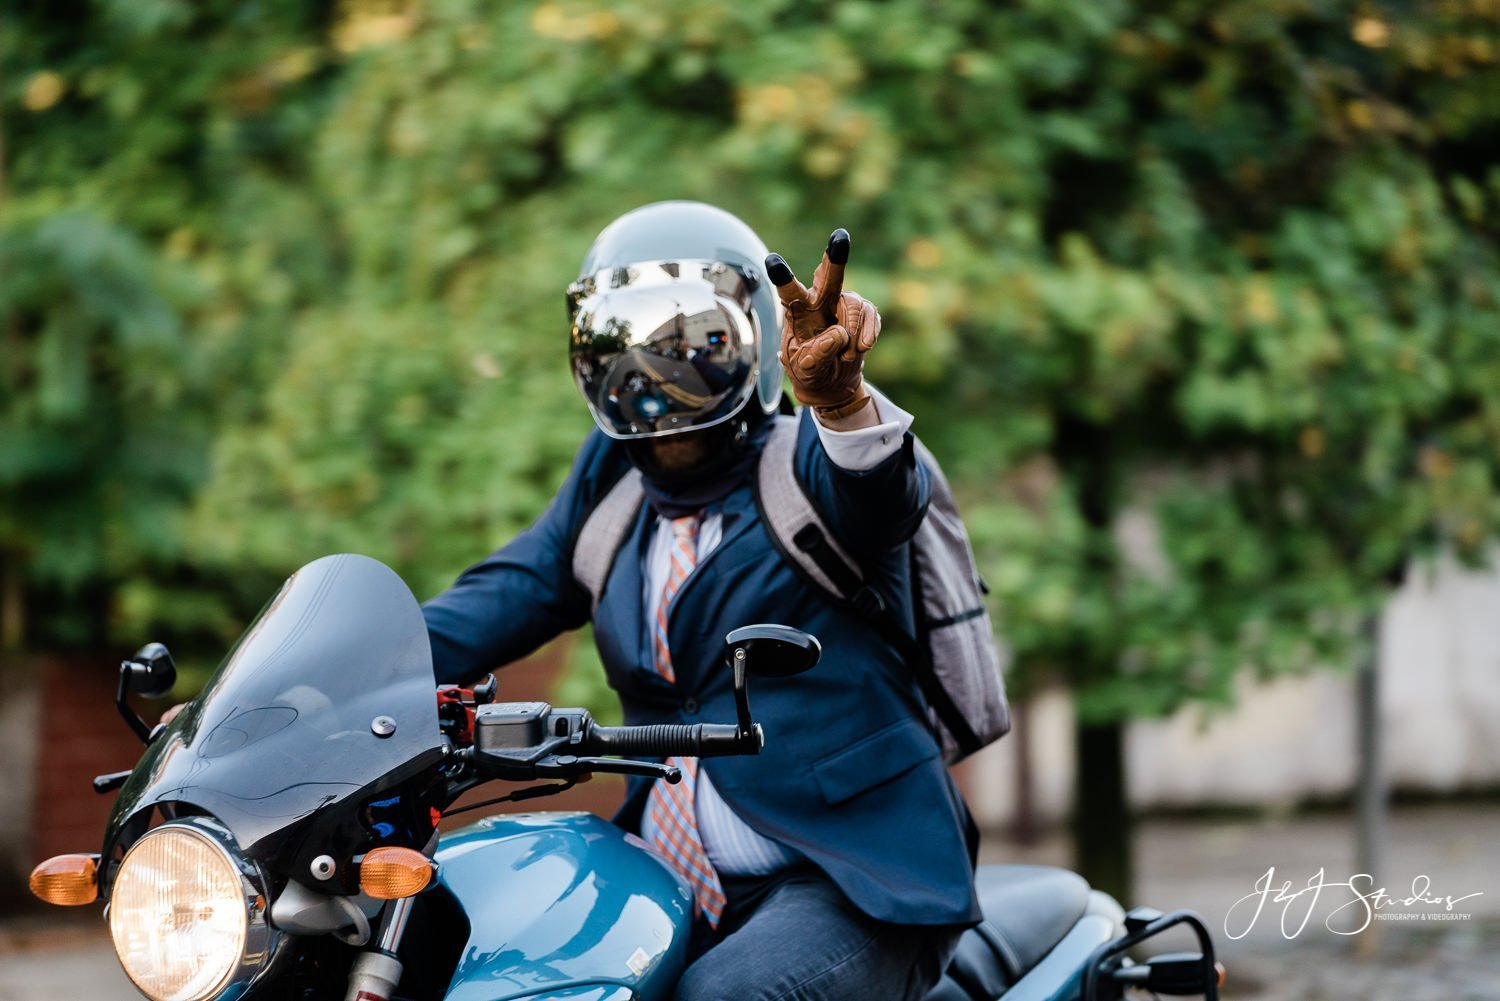 rider in navy suit flashing peace sign dgr 2019